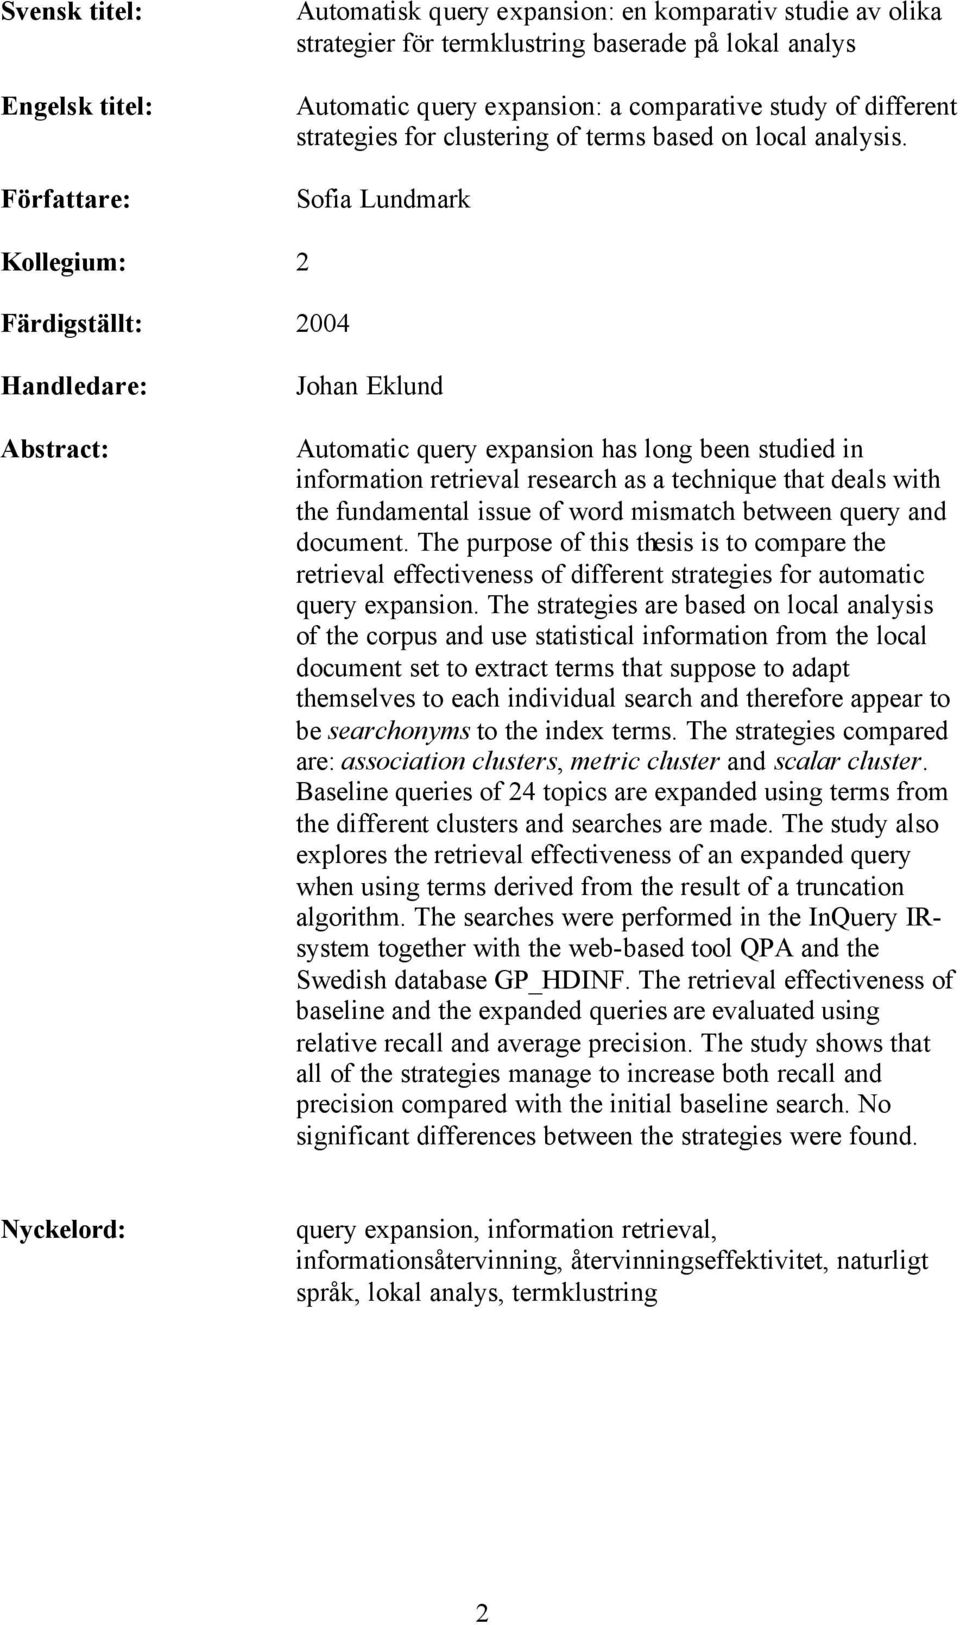 Sofia Lundmark Kollegium: 2 Färdigställt: 2004 Handledare: Abstract: Johan Eklund Automatic query expansion has long been studied in information retrieval research as a technique that deals with the